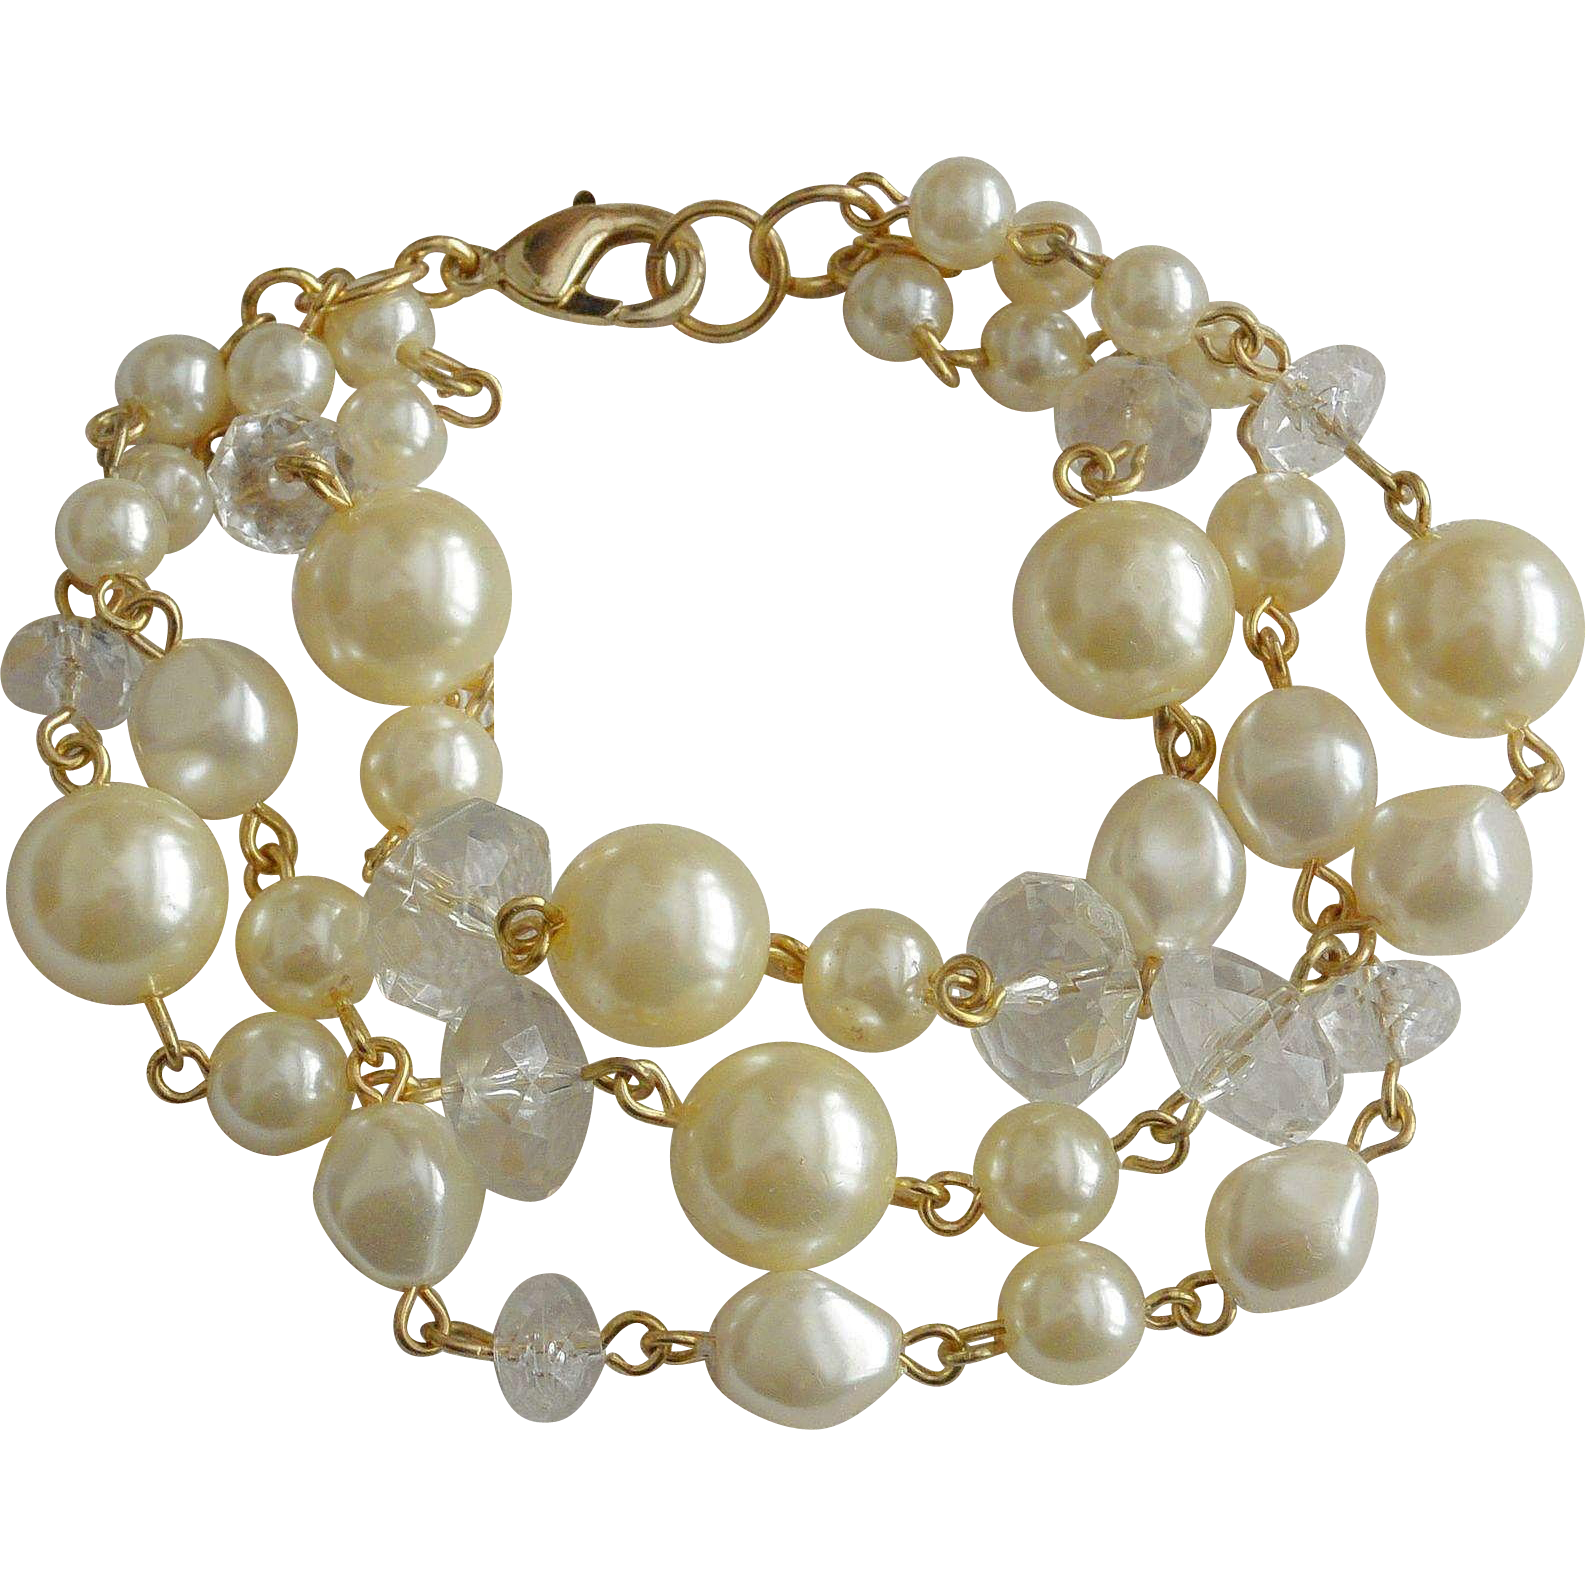 Three Strands Mixed Faux Pearls and Lucite Beads Bracelet